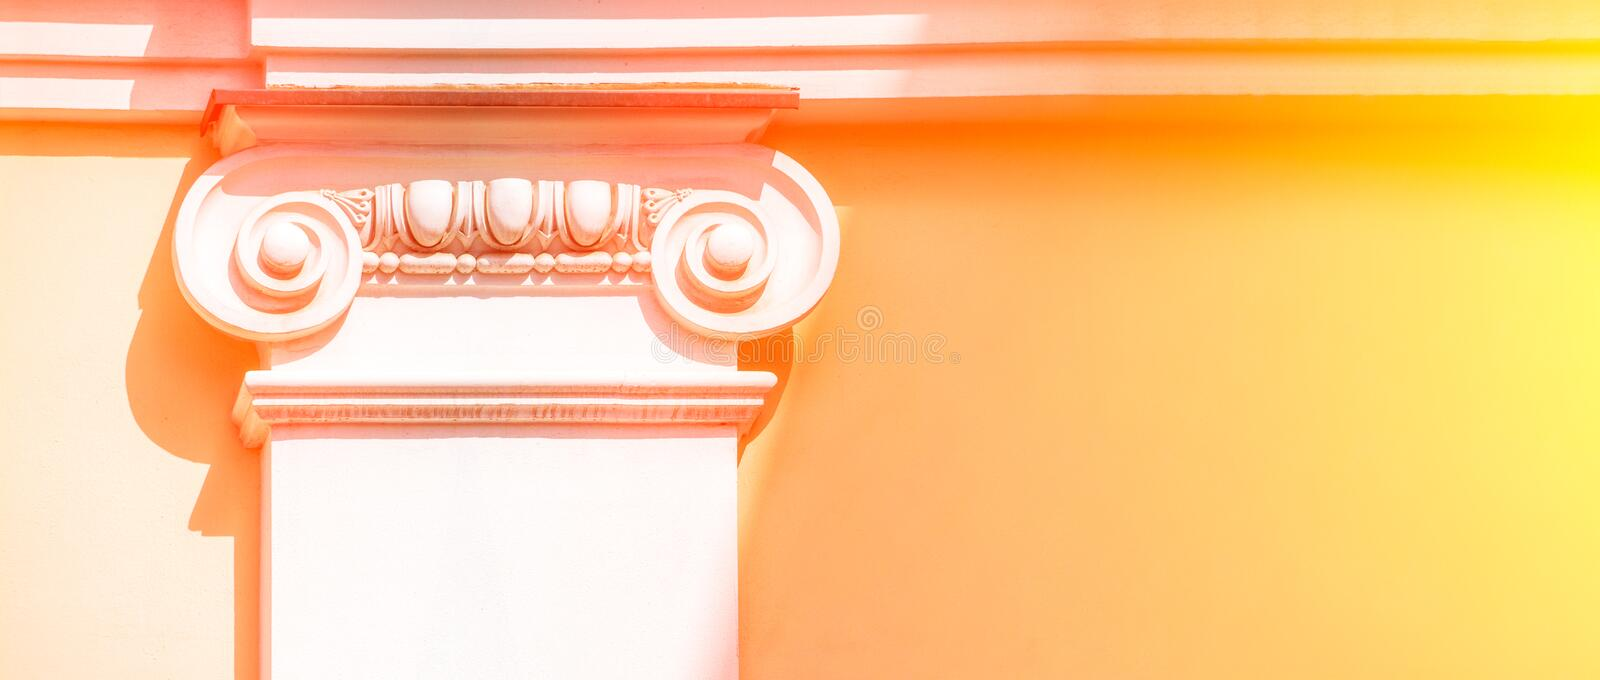 White capital at the top of the column. Beautiful architectural element. Corinthian order. The upper part of the column.  royalty free stock photo